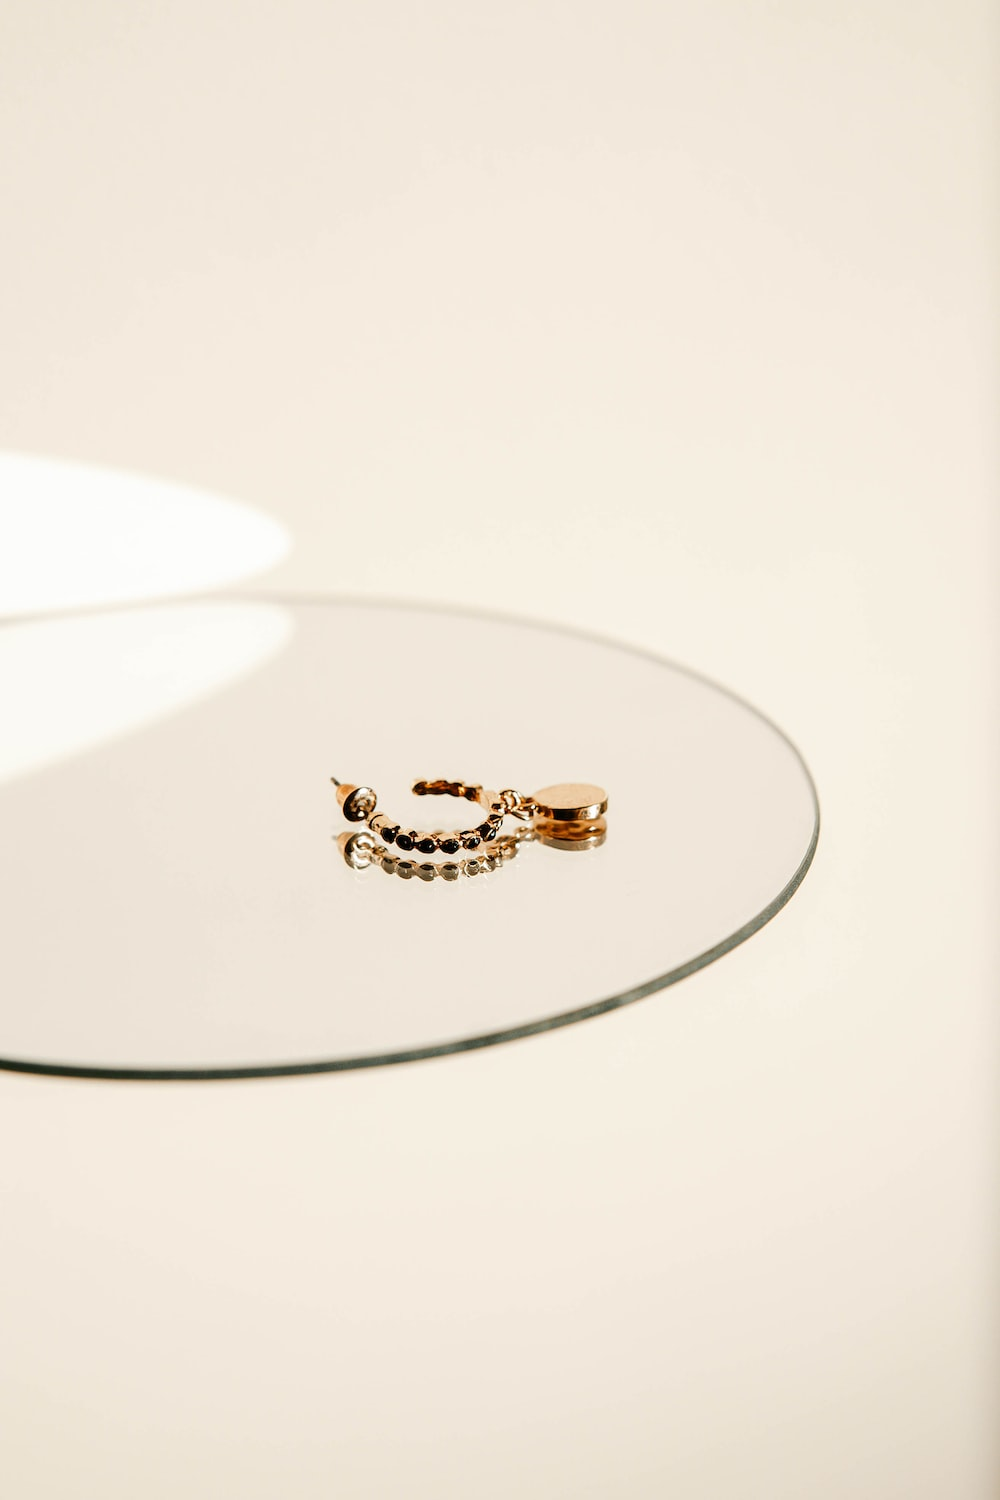 gold and diamond ring on white surface